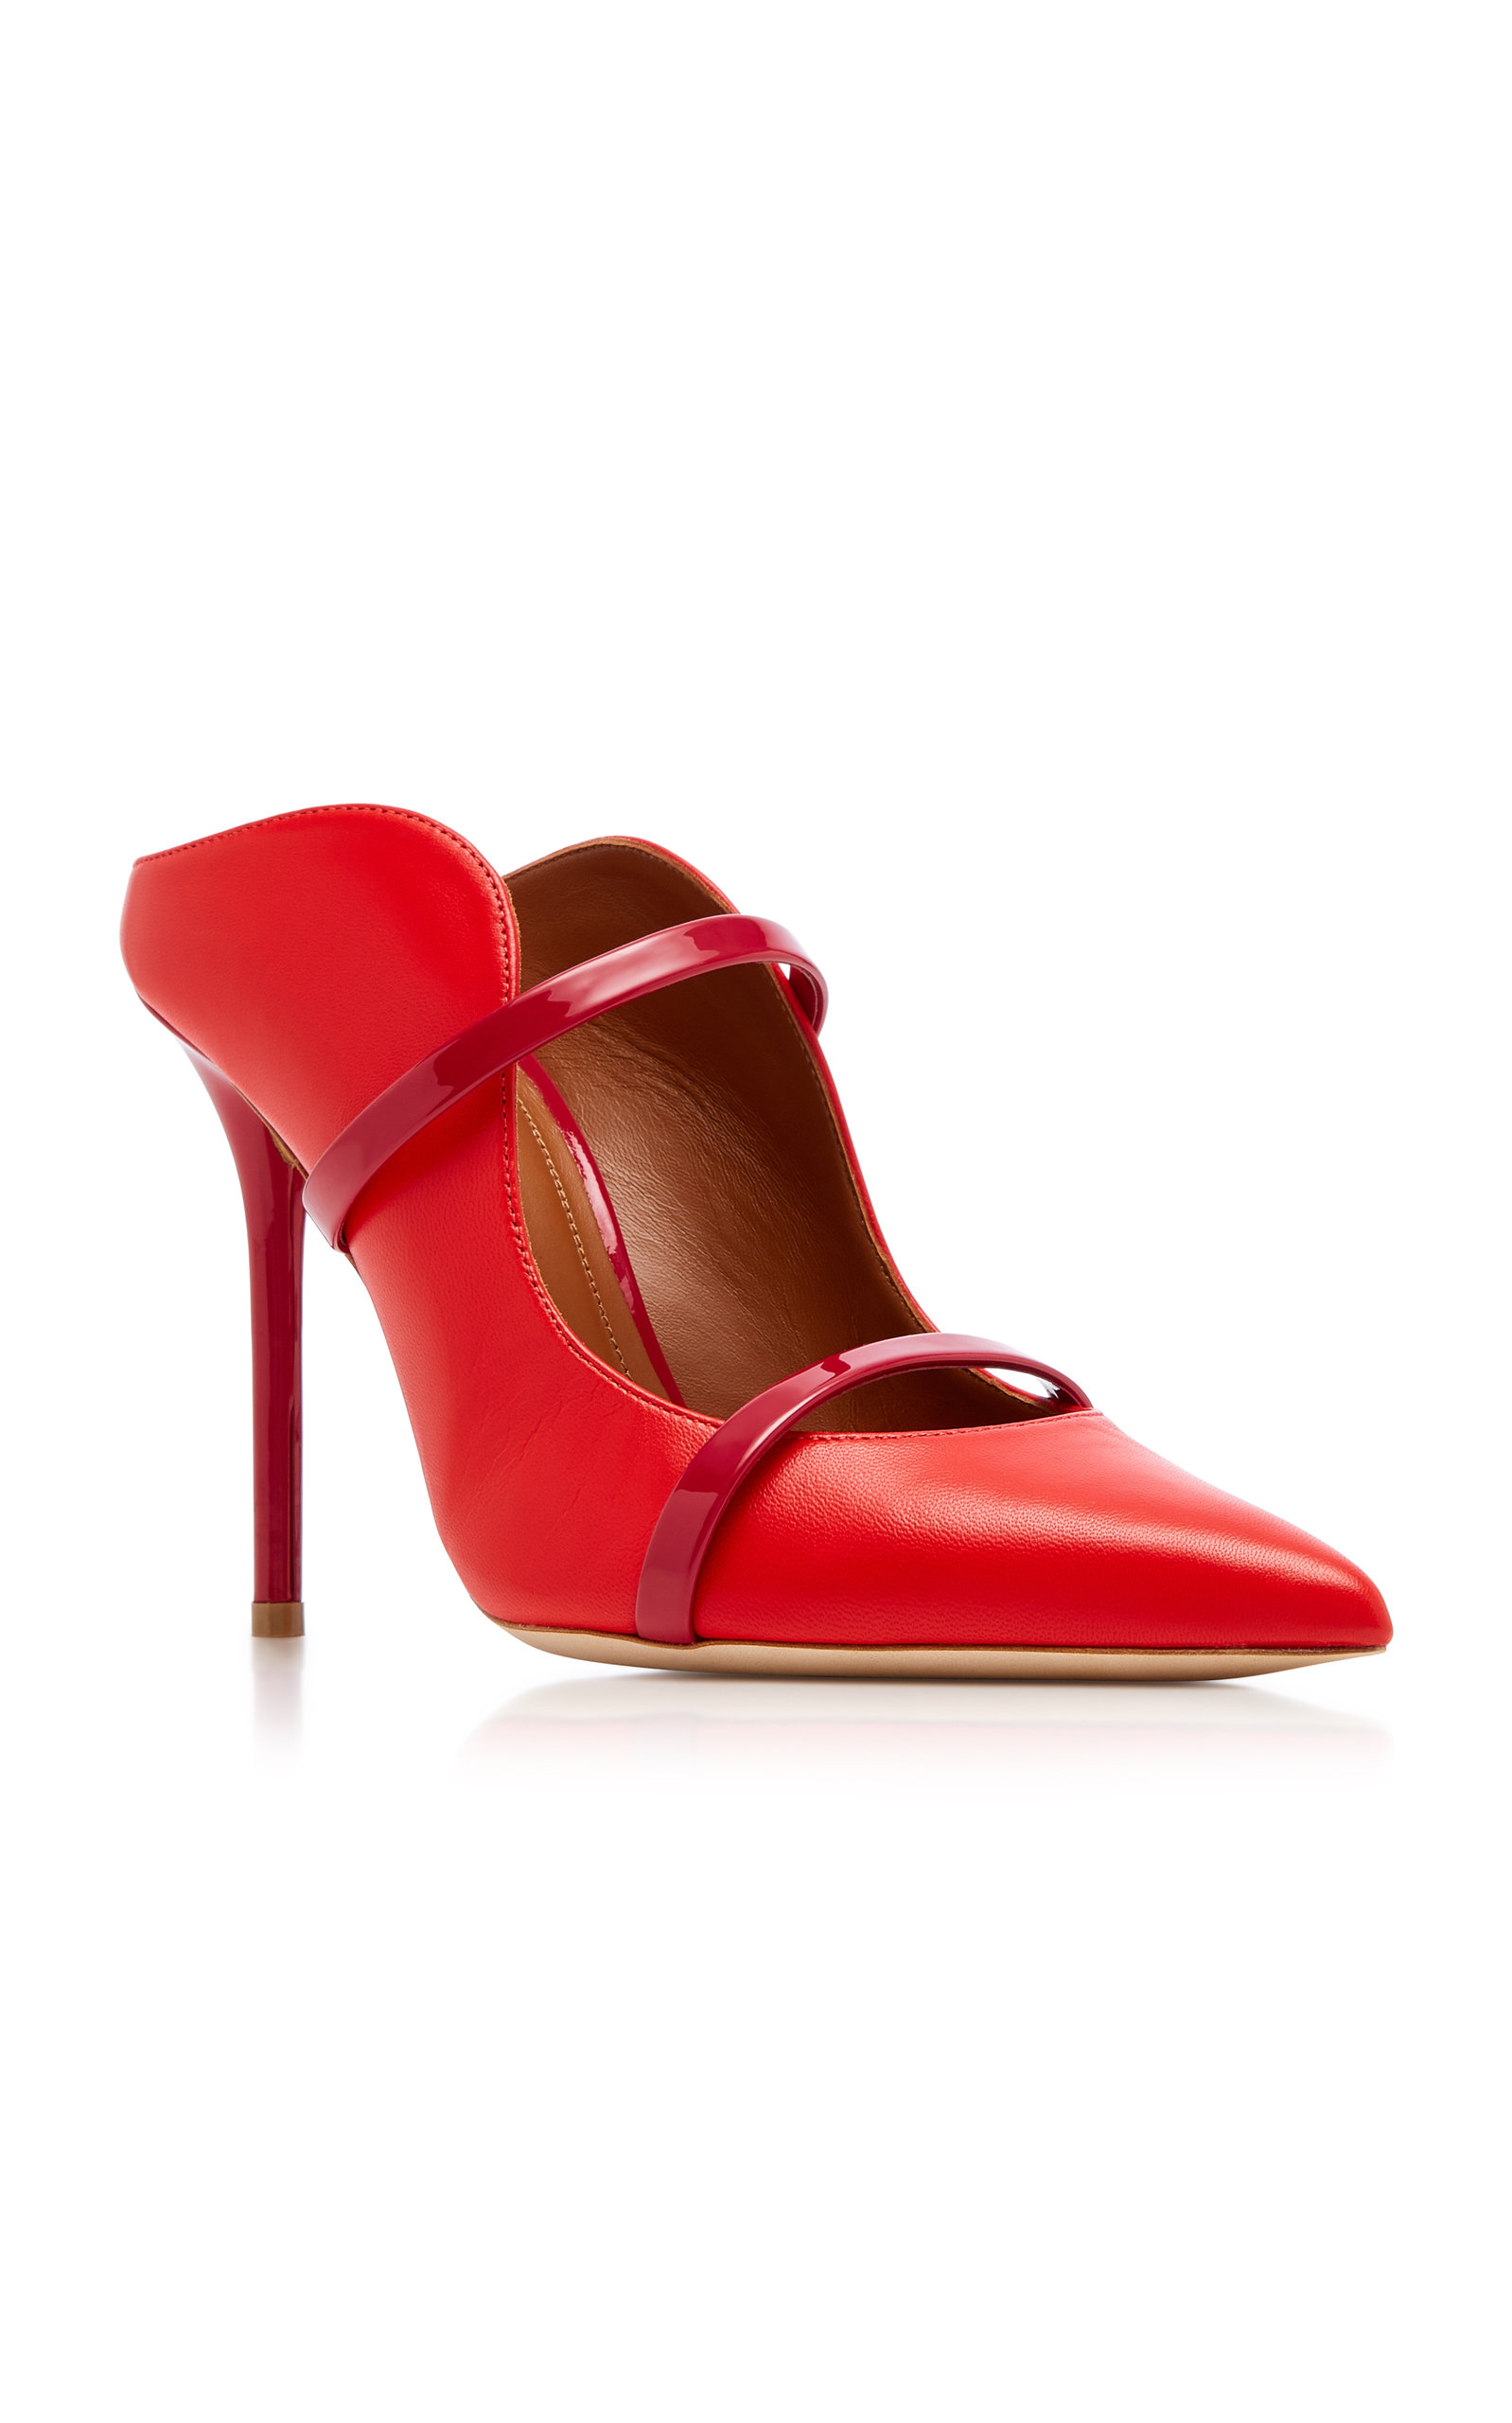 71b267cde62d Malone SouliersMaureen Patent Leather-Trimmed Leather Mules. CLOSE.  Loading. Loading. Loading. Loading